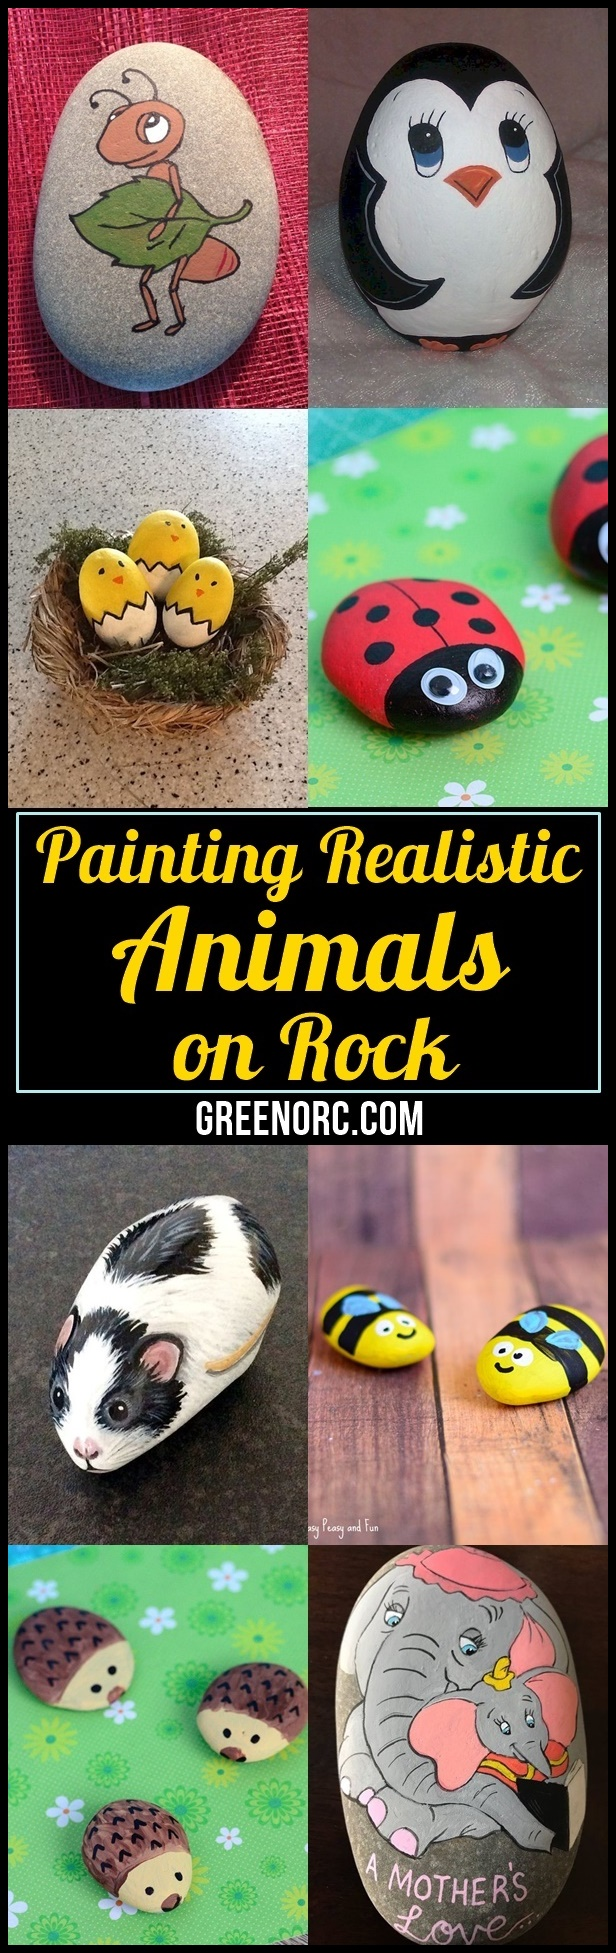 Painting Realistic Animals on Rock